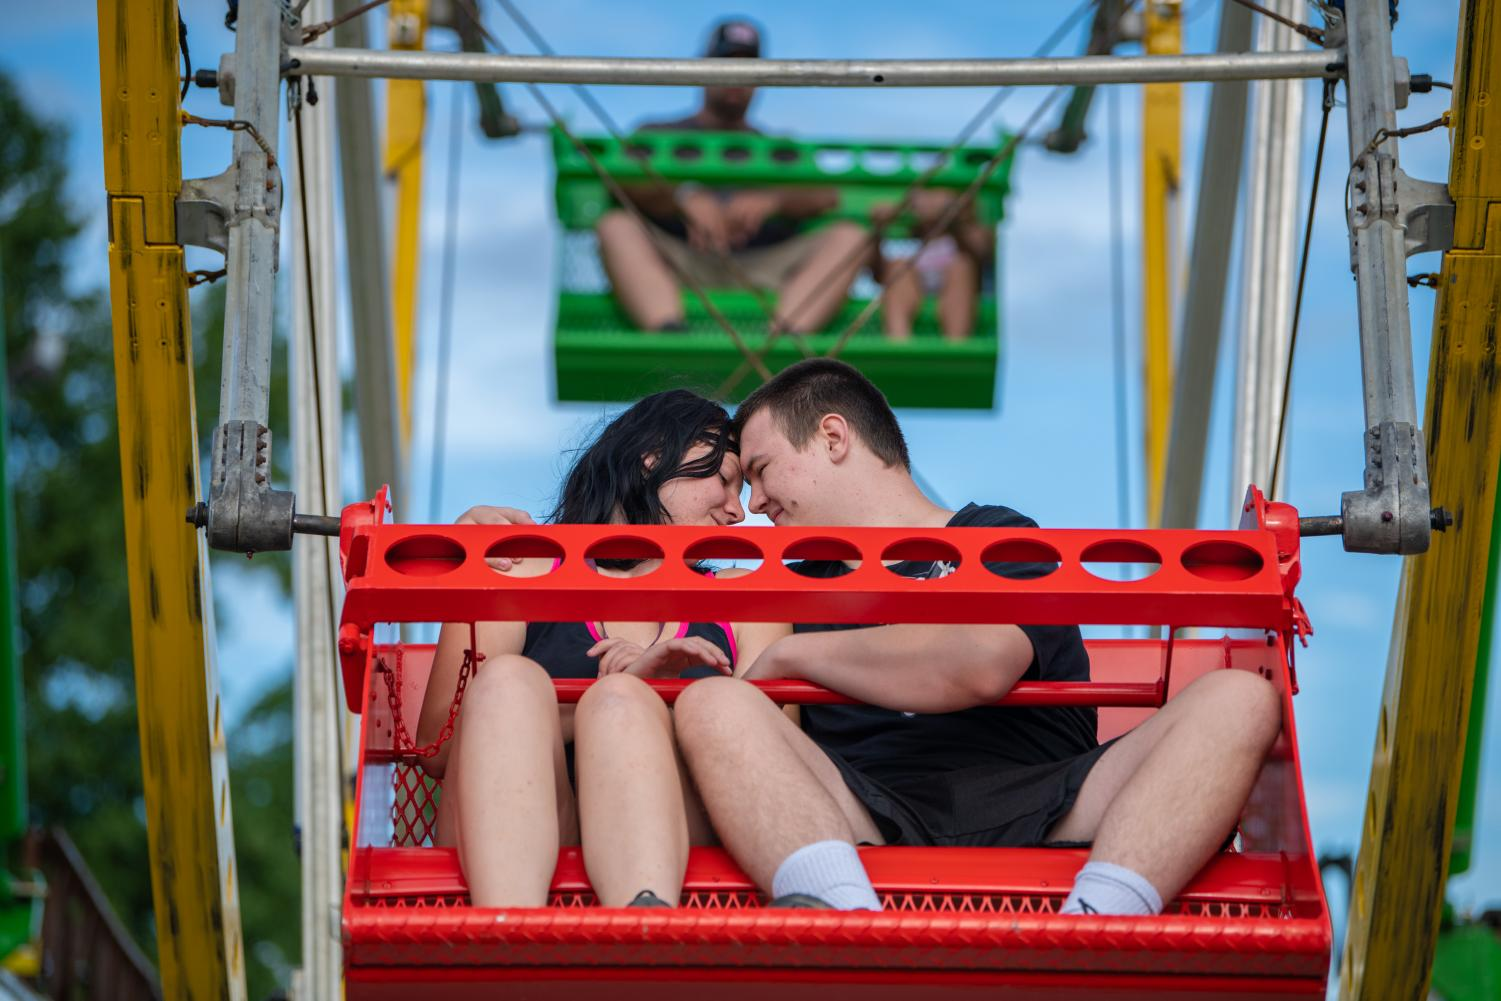 Gallery: 2019 Du Quoin State Fair – Daily Egyptian